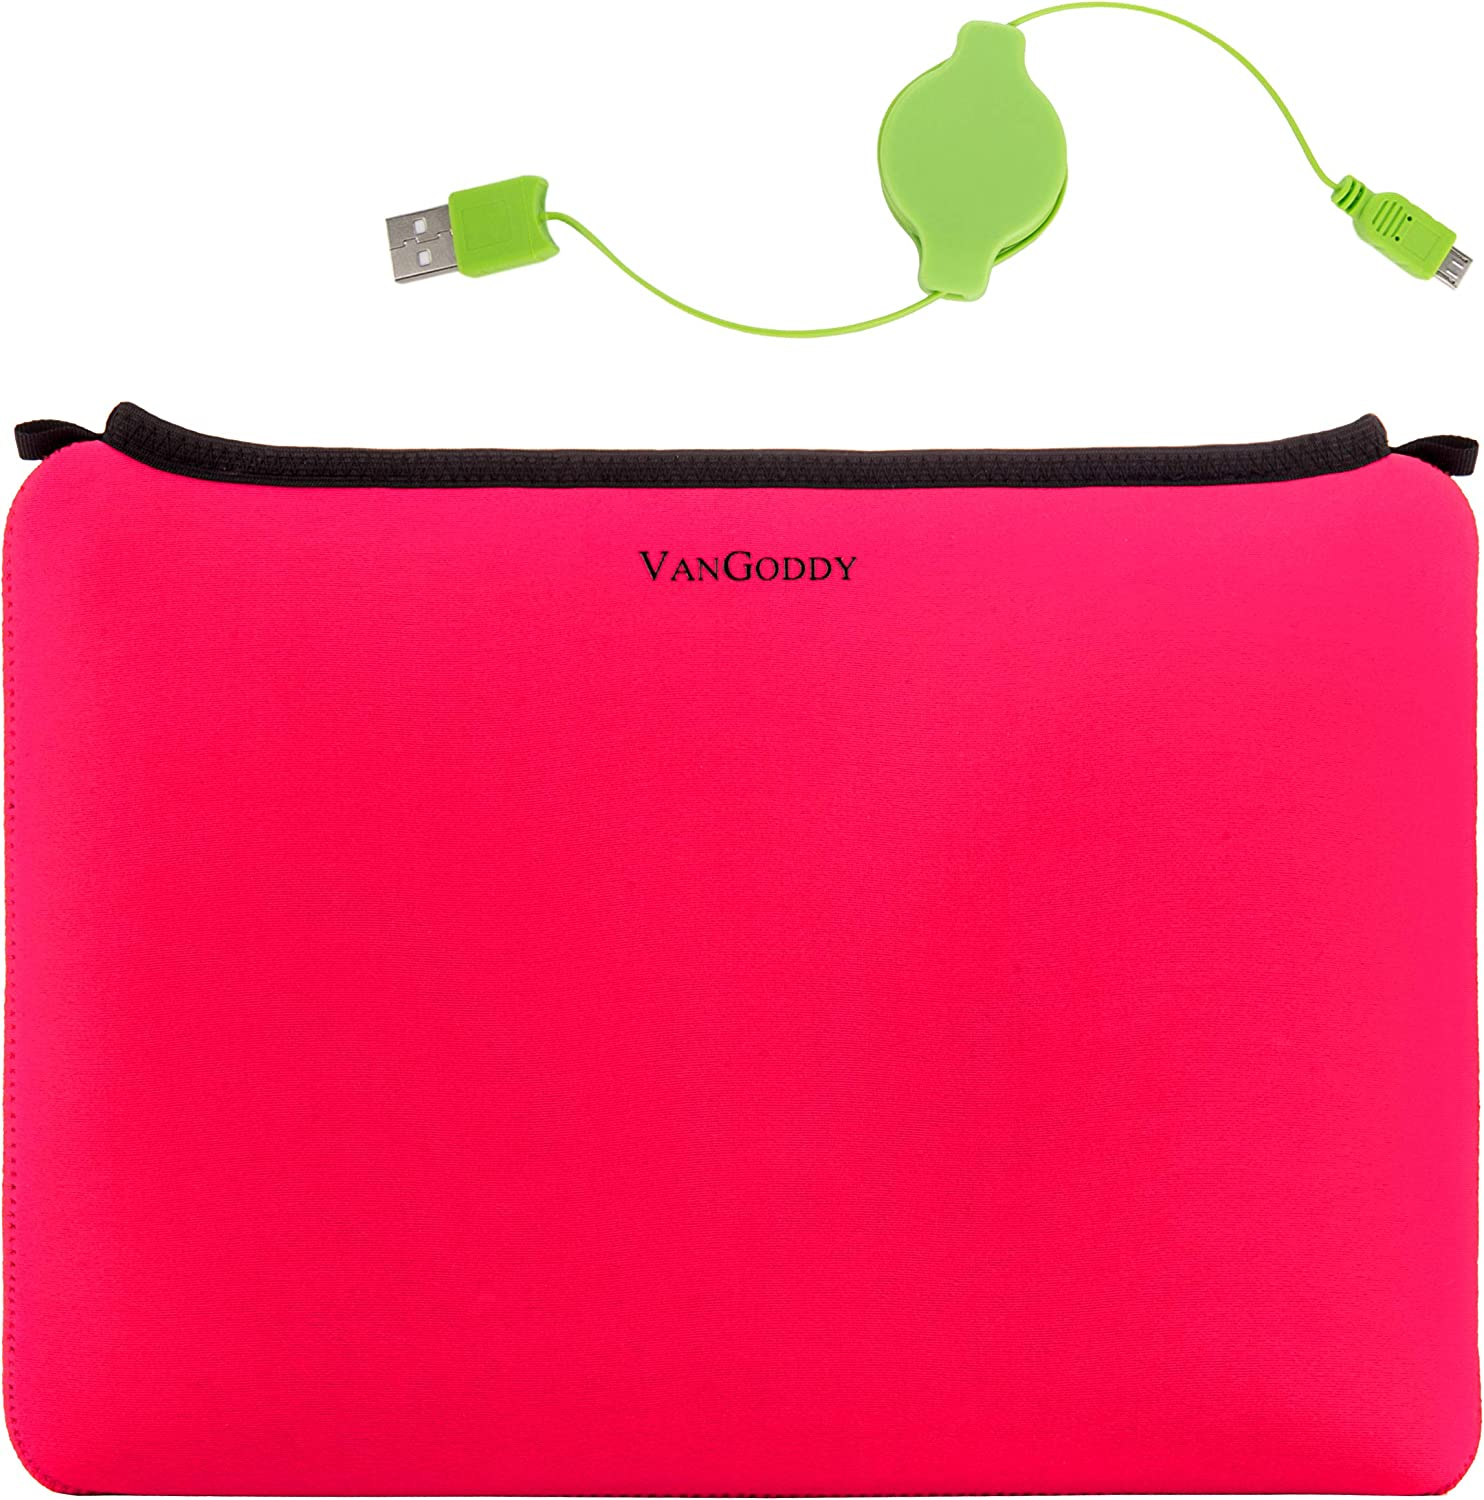 13.3 Inch Laptop Sleeve for Toshiba Portege A30 D1300ED, X30 D1352, X30 D1354, X30 D1356, X30 E1320, X30 E1322, X30 E1324, X30 E1326, X30 E1346, X30T E3142, X30T E3144 and Retractable Charge Cable